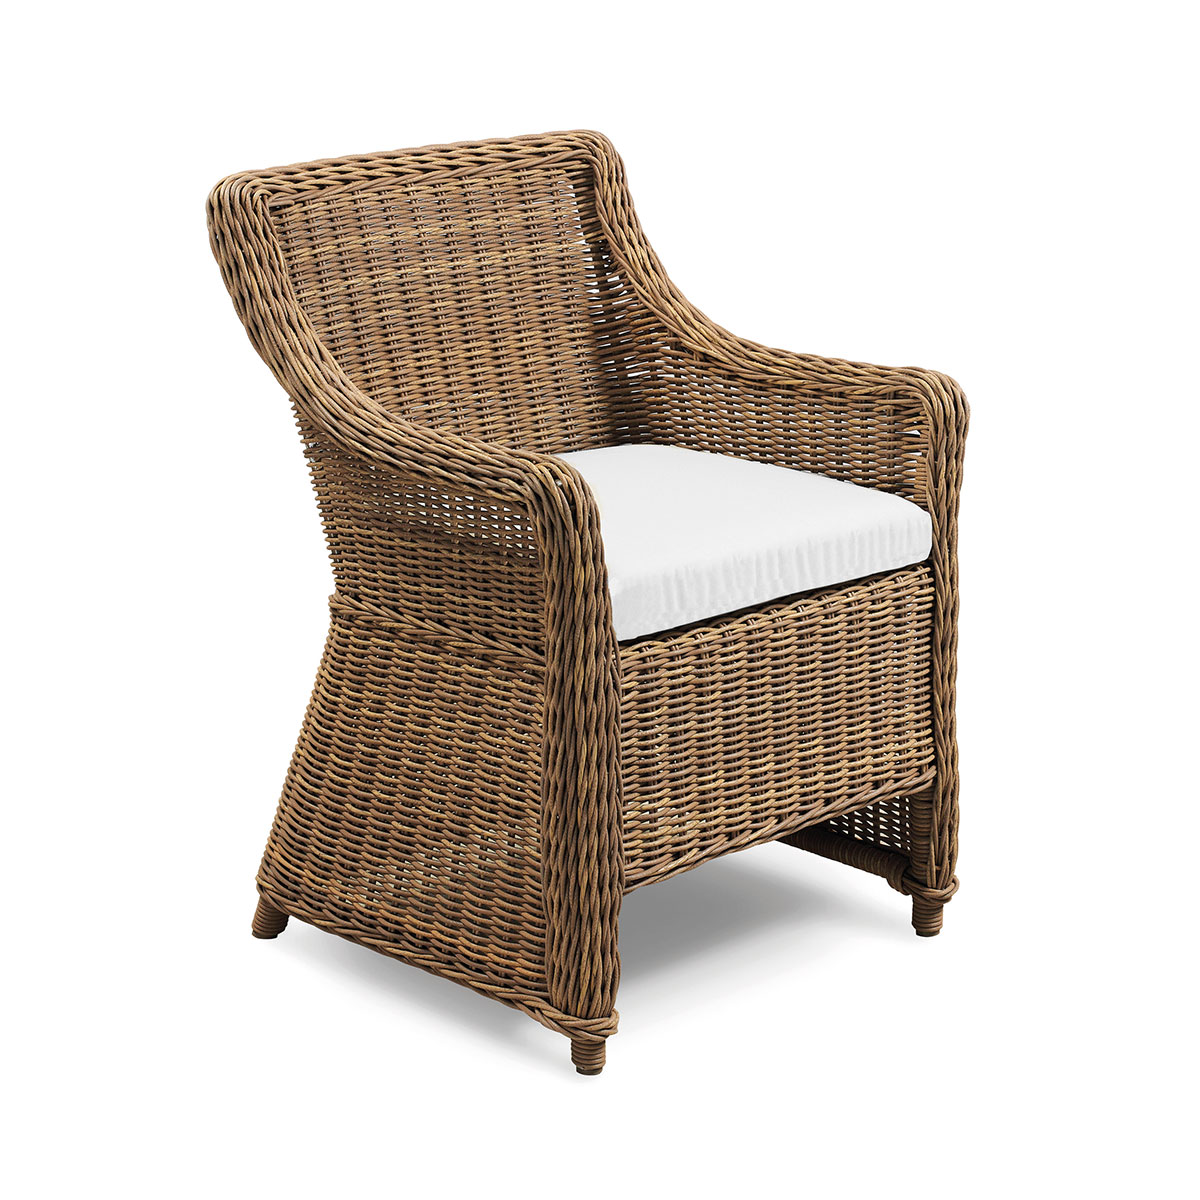 Dining armchair Cloe Braid